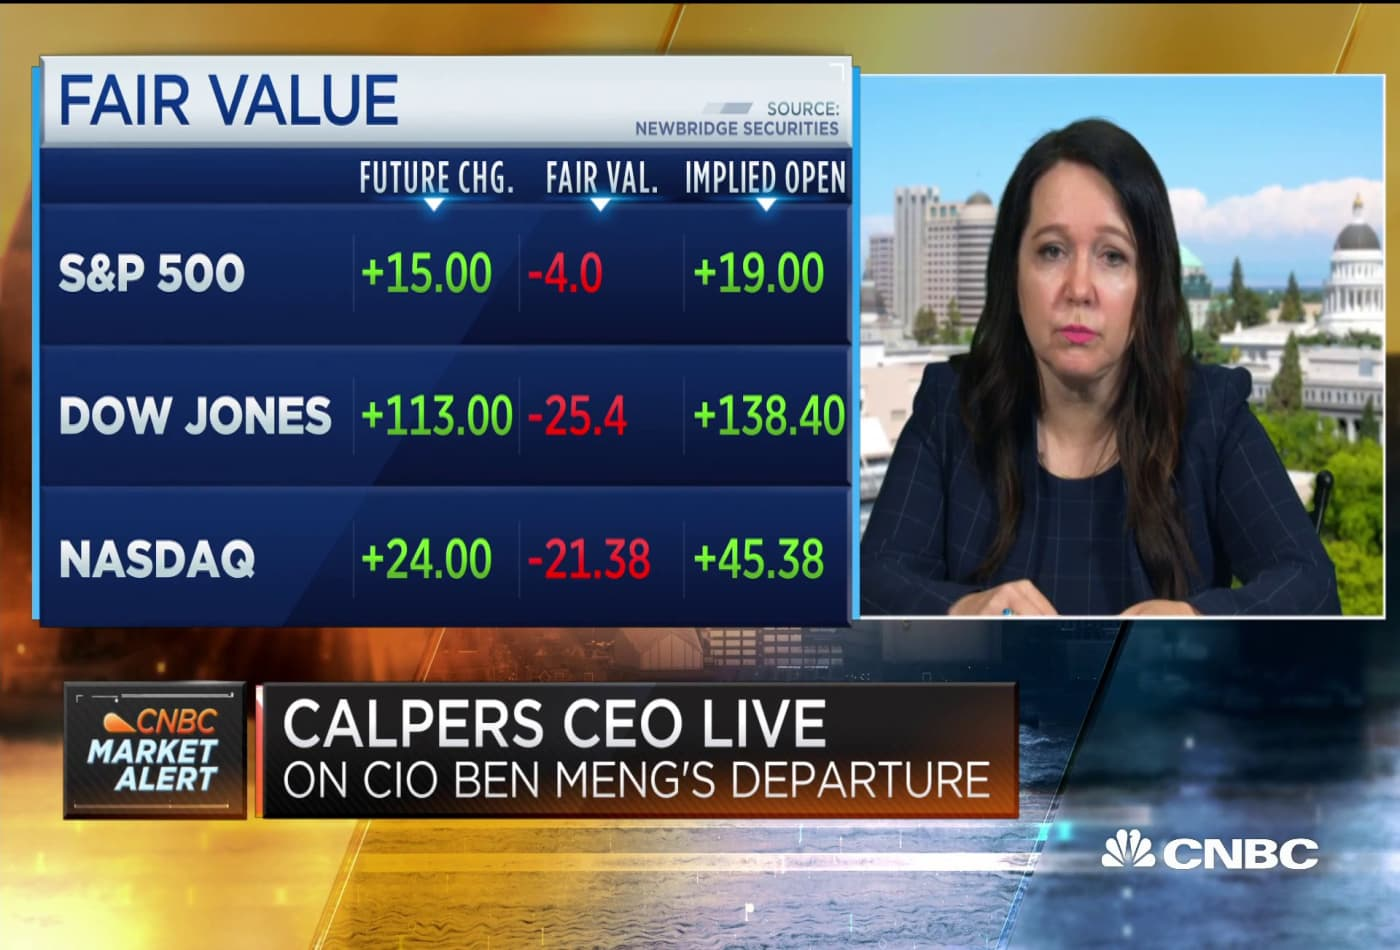 CalPERS CEO Marcie Frost on resignation of CIO Yu Ben Meng